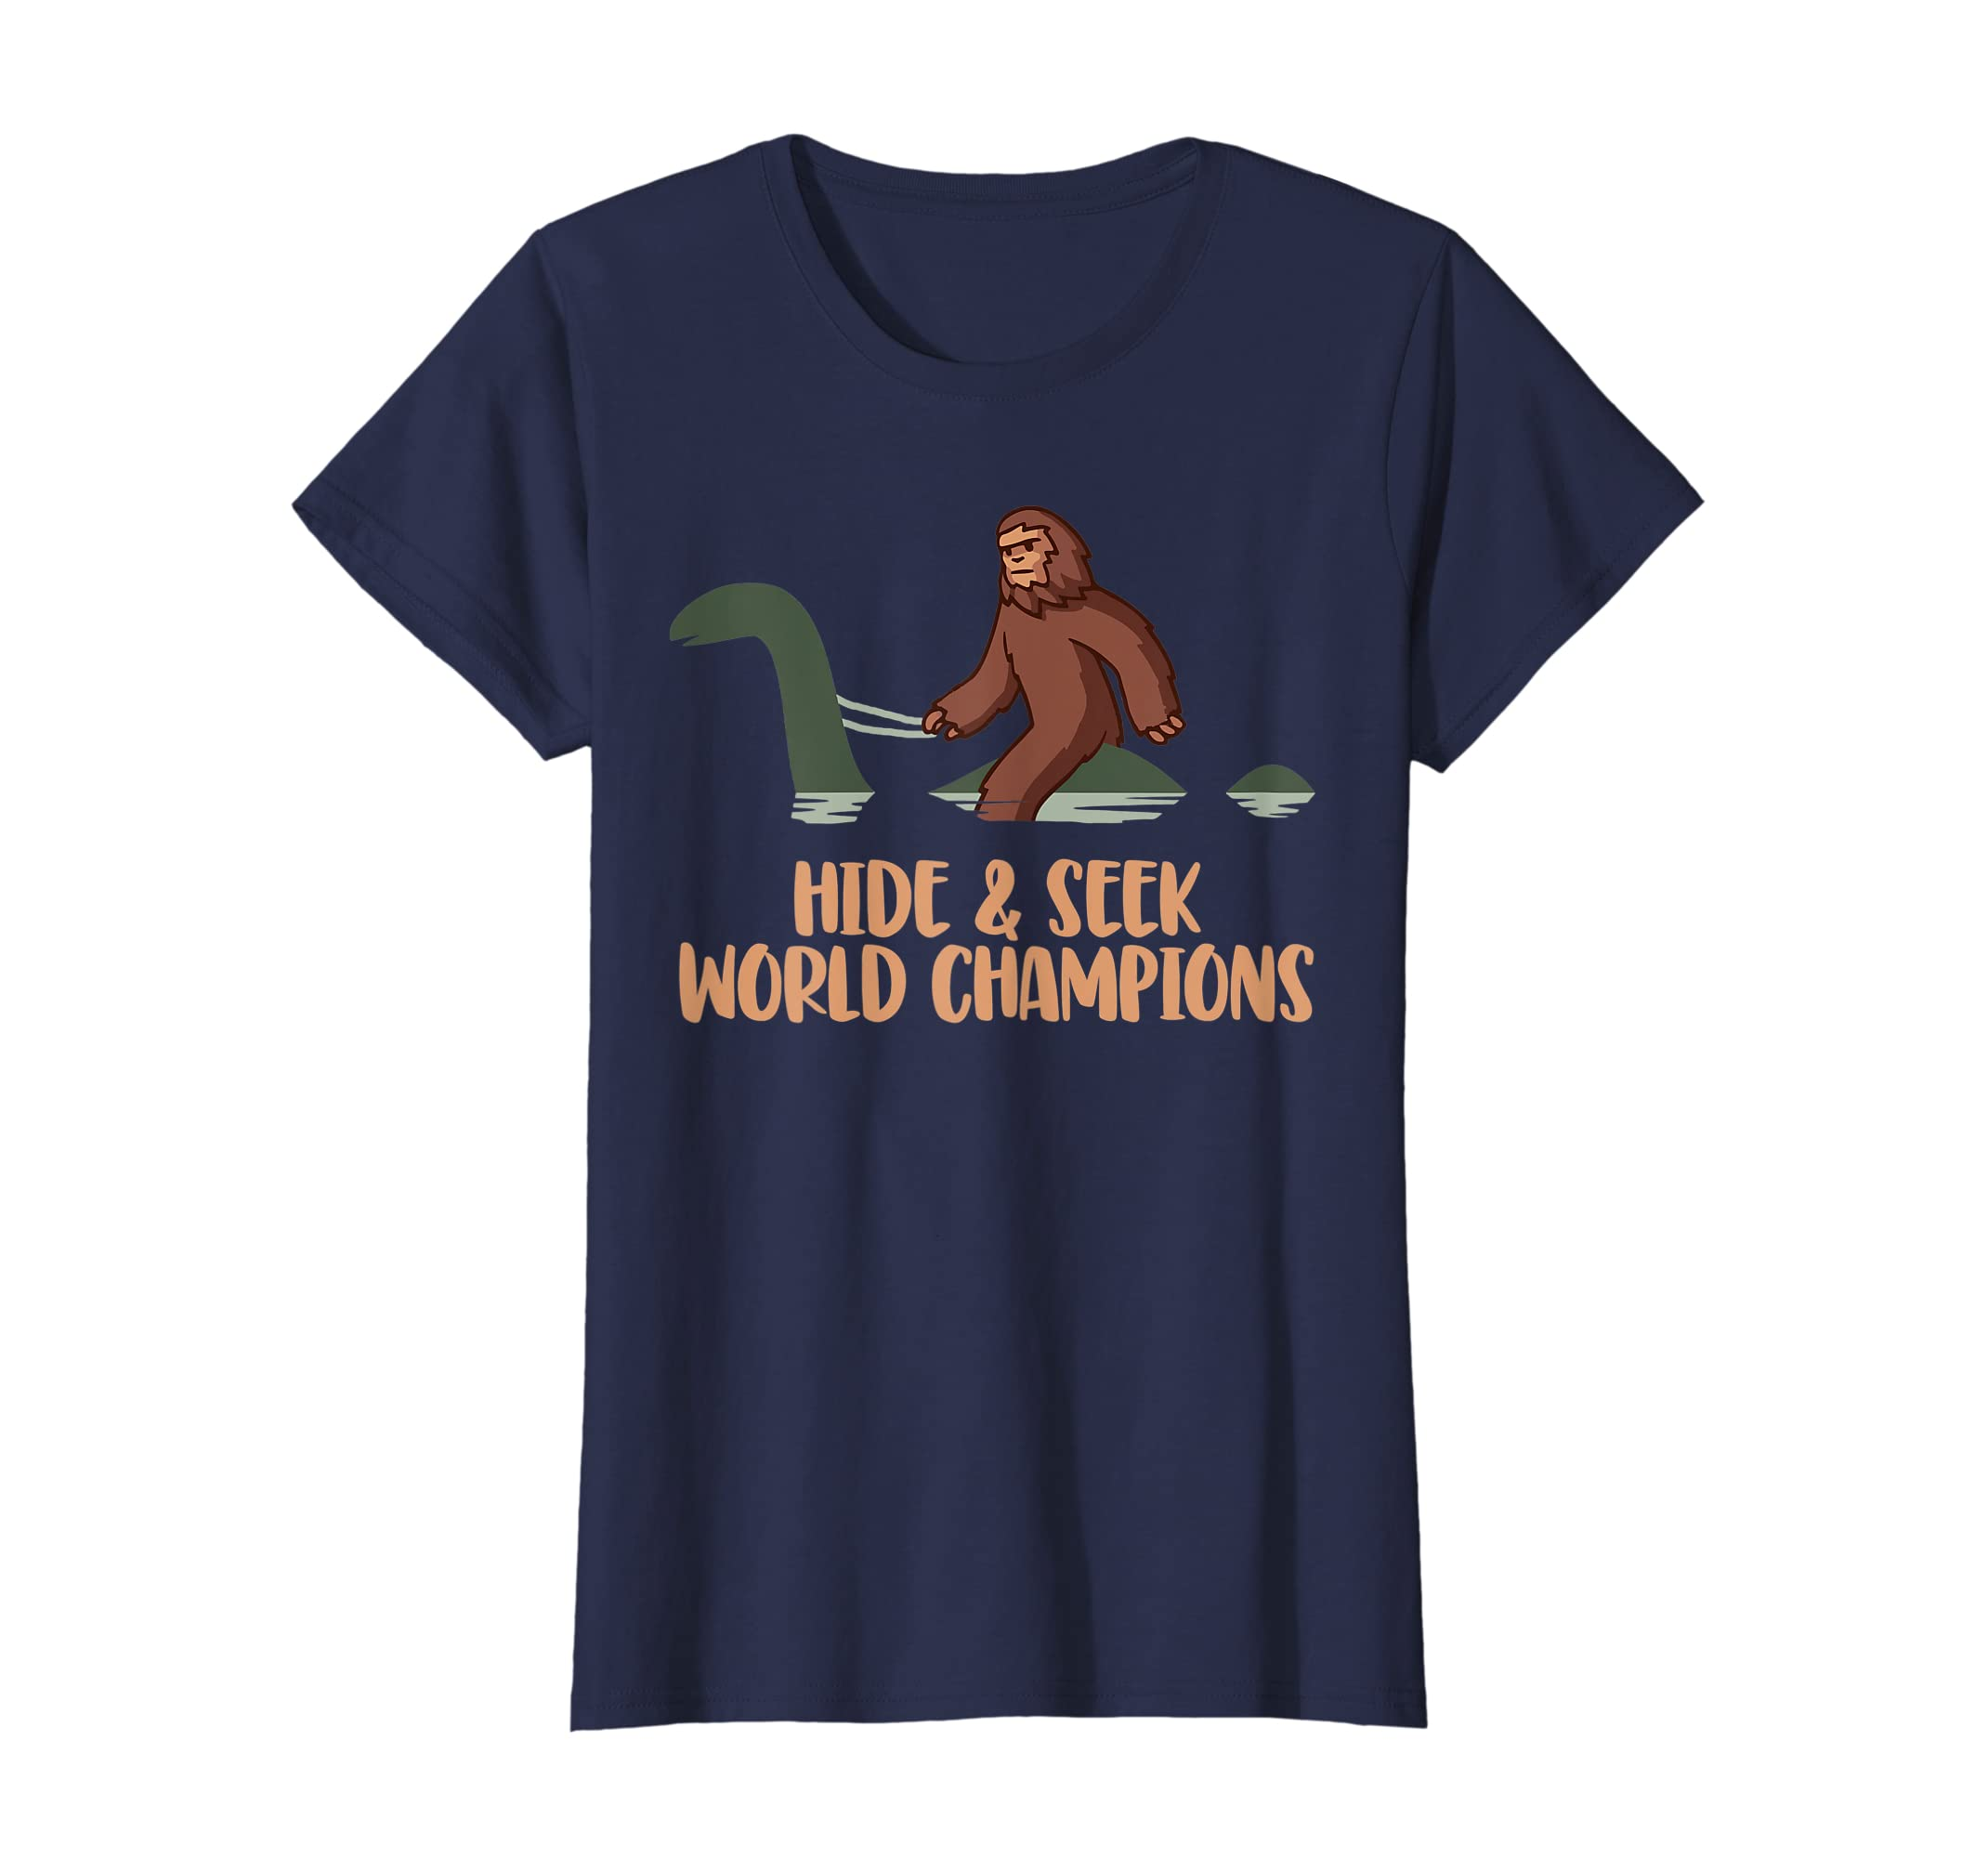 f94aec5a Amazon.com: Hide and Seek World Champions Bigfoot & Nessy Funny T-Shirt:  Clothing